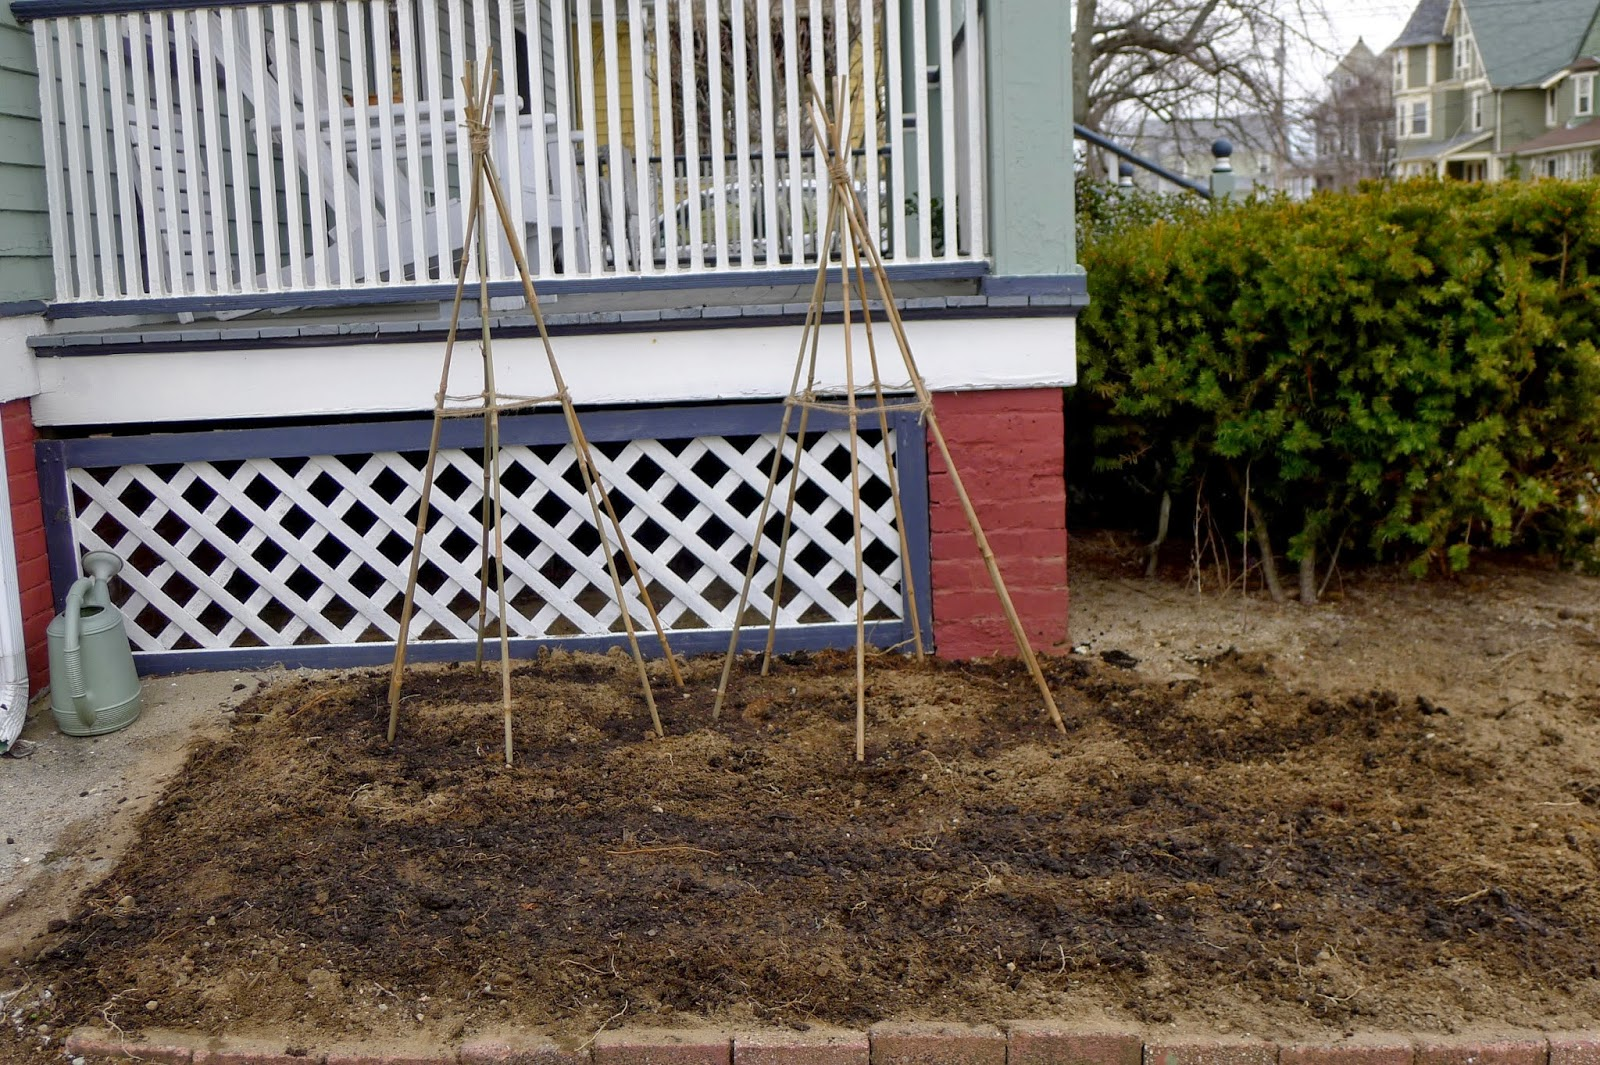 planting peas, edible landscaping